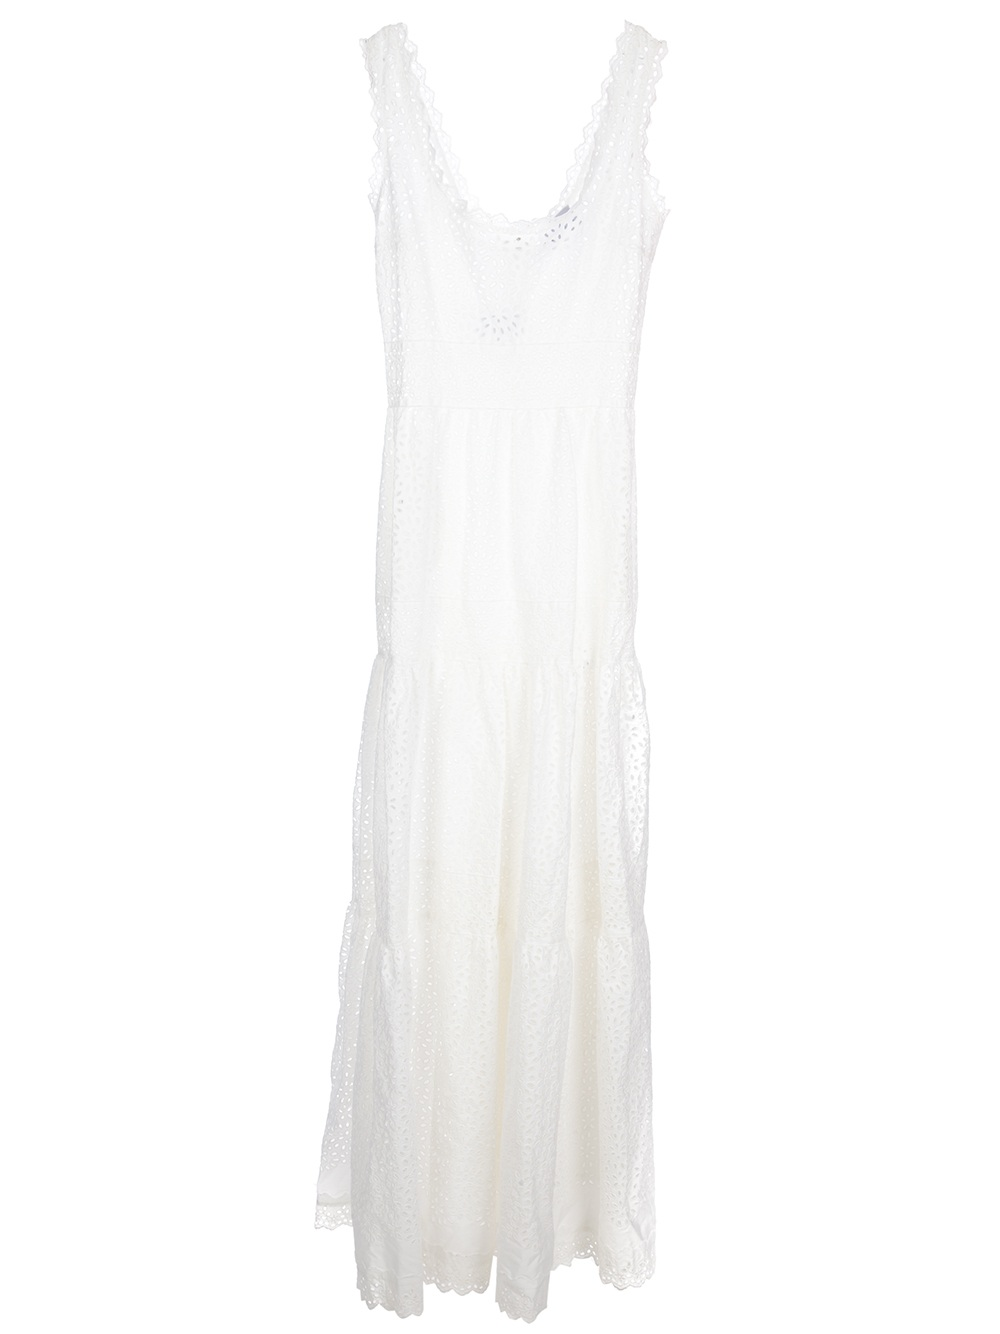 3bf8e043fd5a Luisa Beccaria Eyelet Maxi Dress in White - Lyst